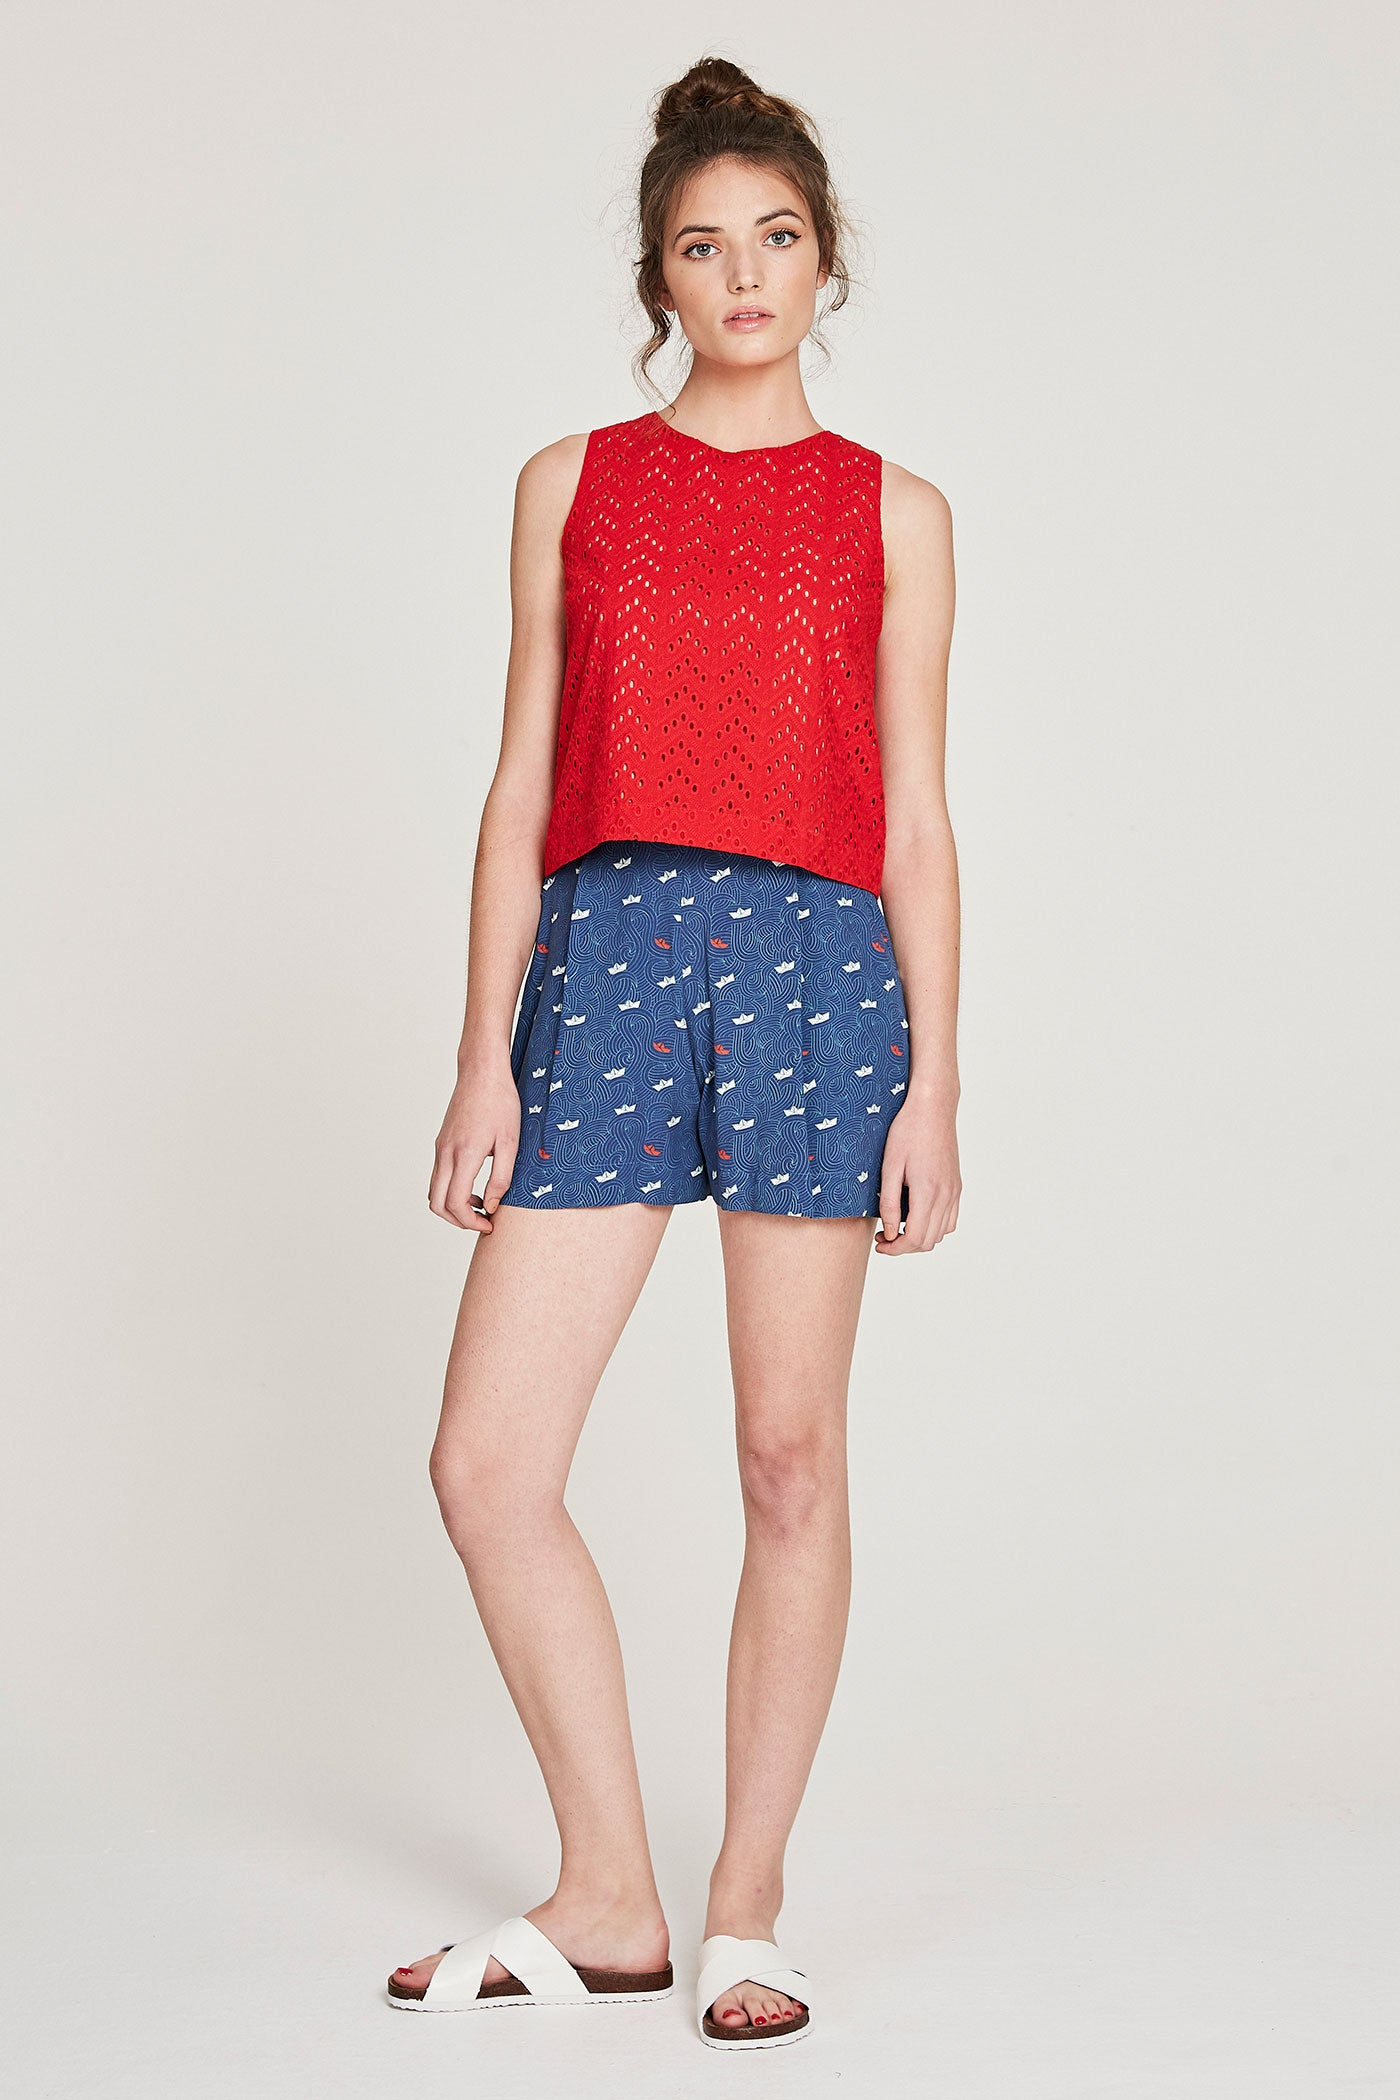 Cropped Keyhole Tank - Red Anglaise